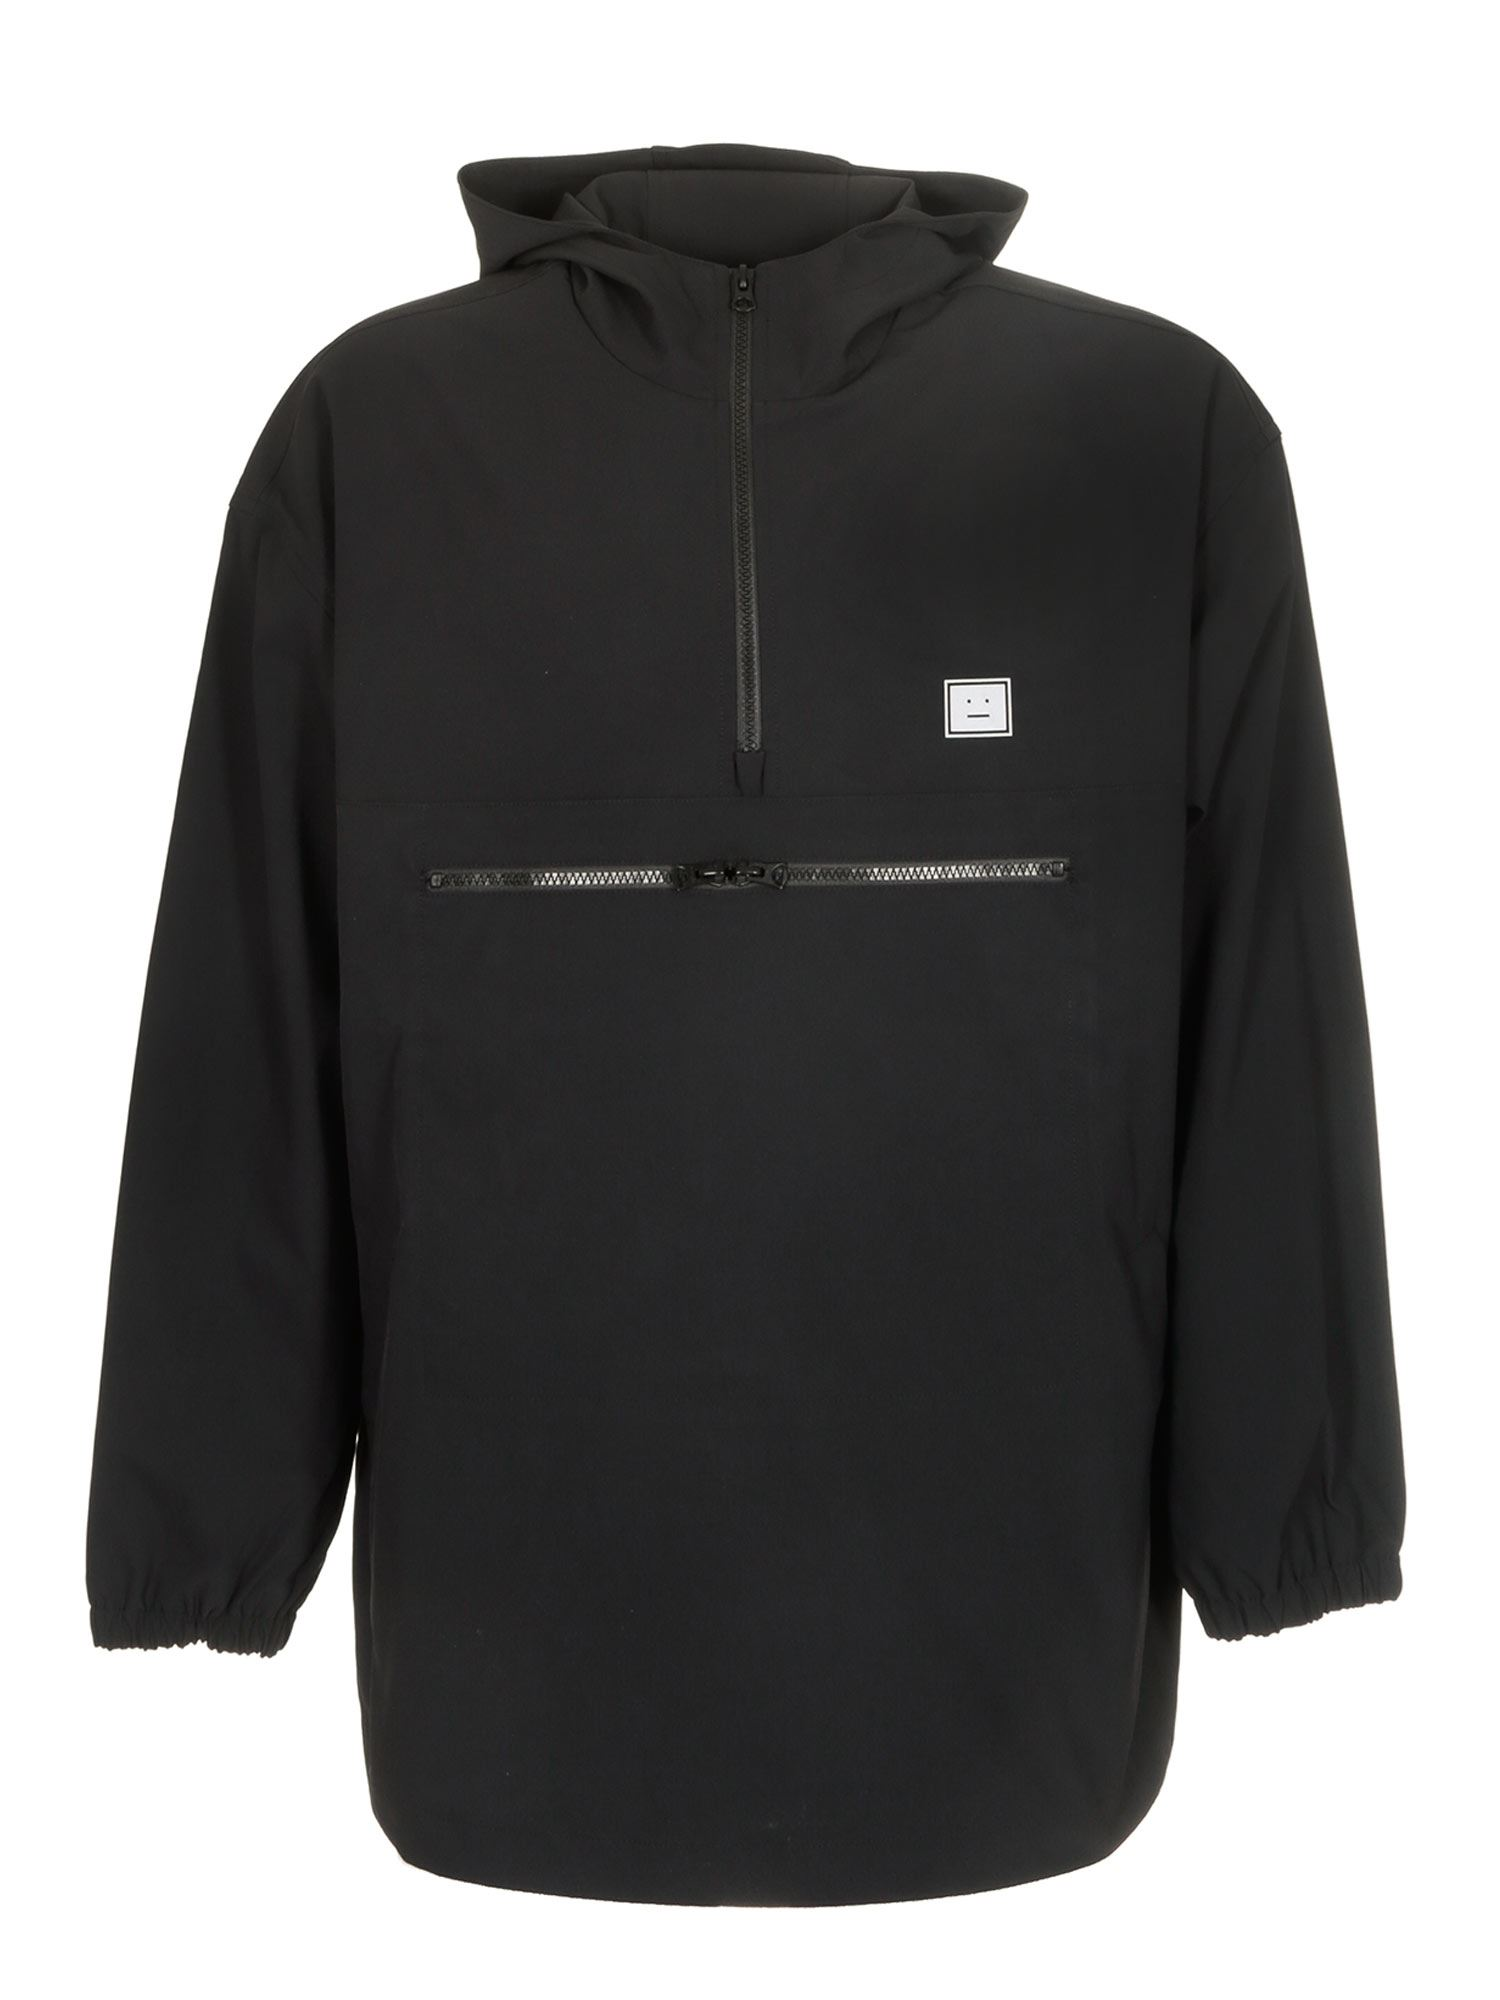 Acne Studios HOODED ANORAK JACKET IN BLACK